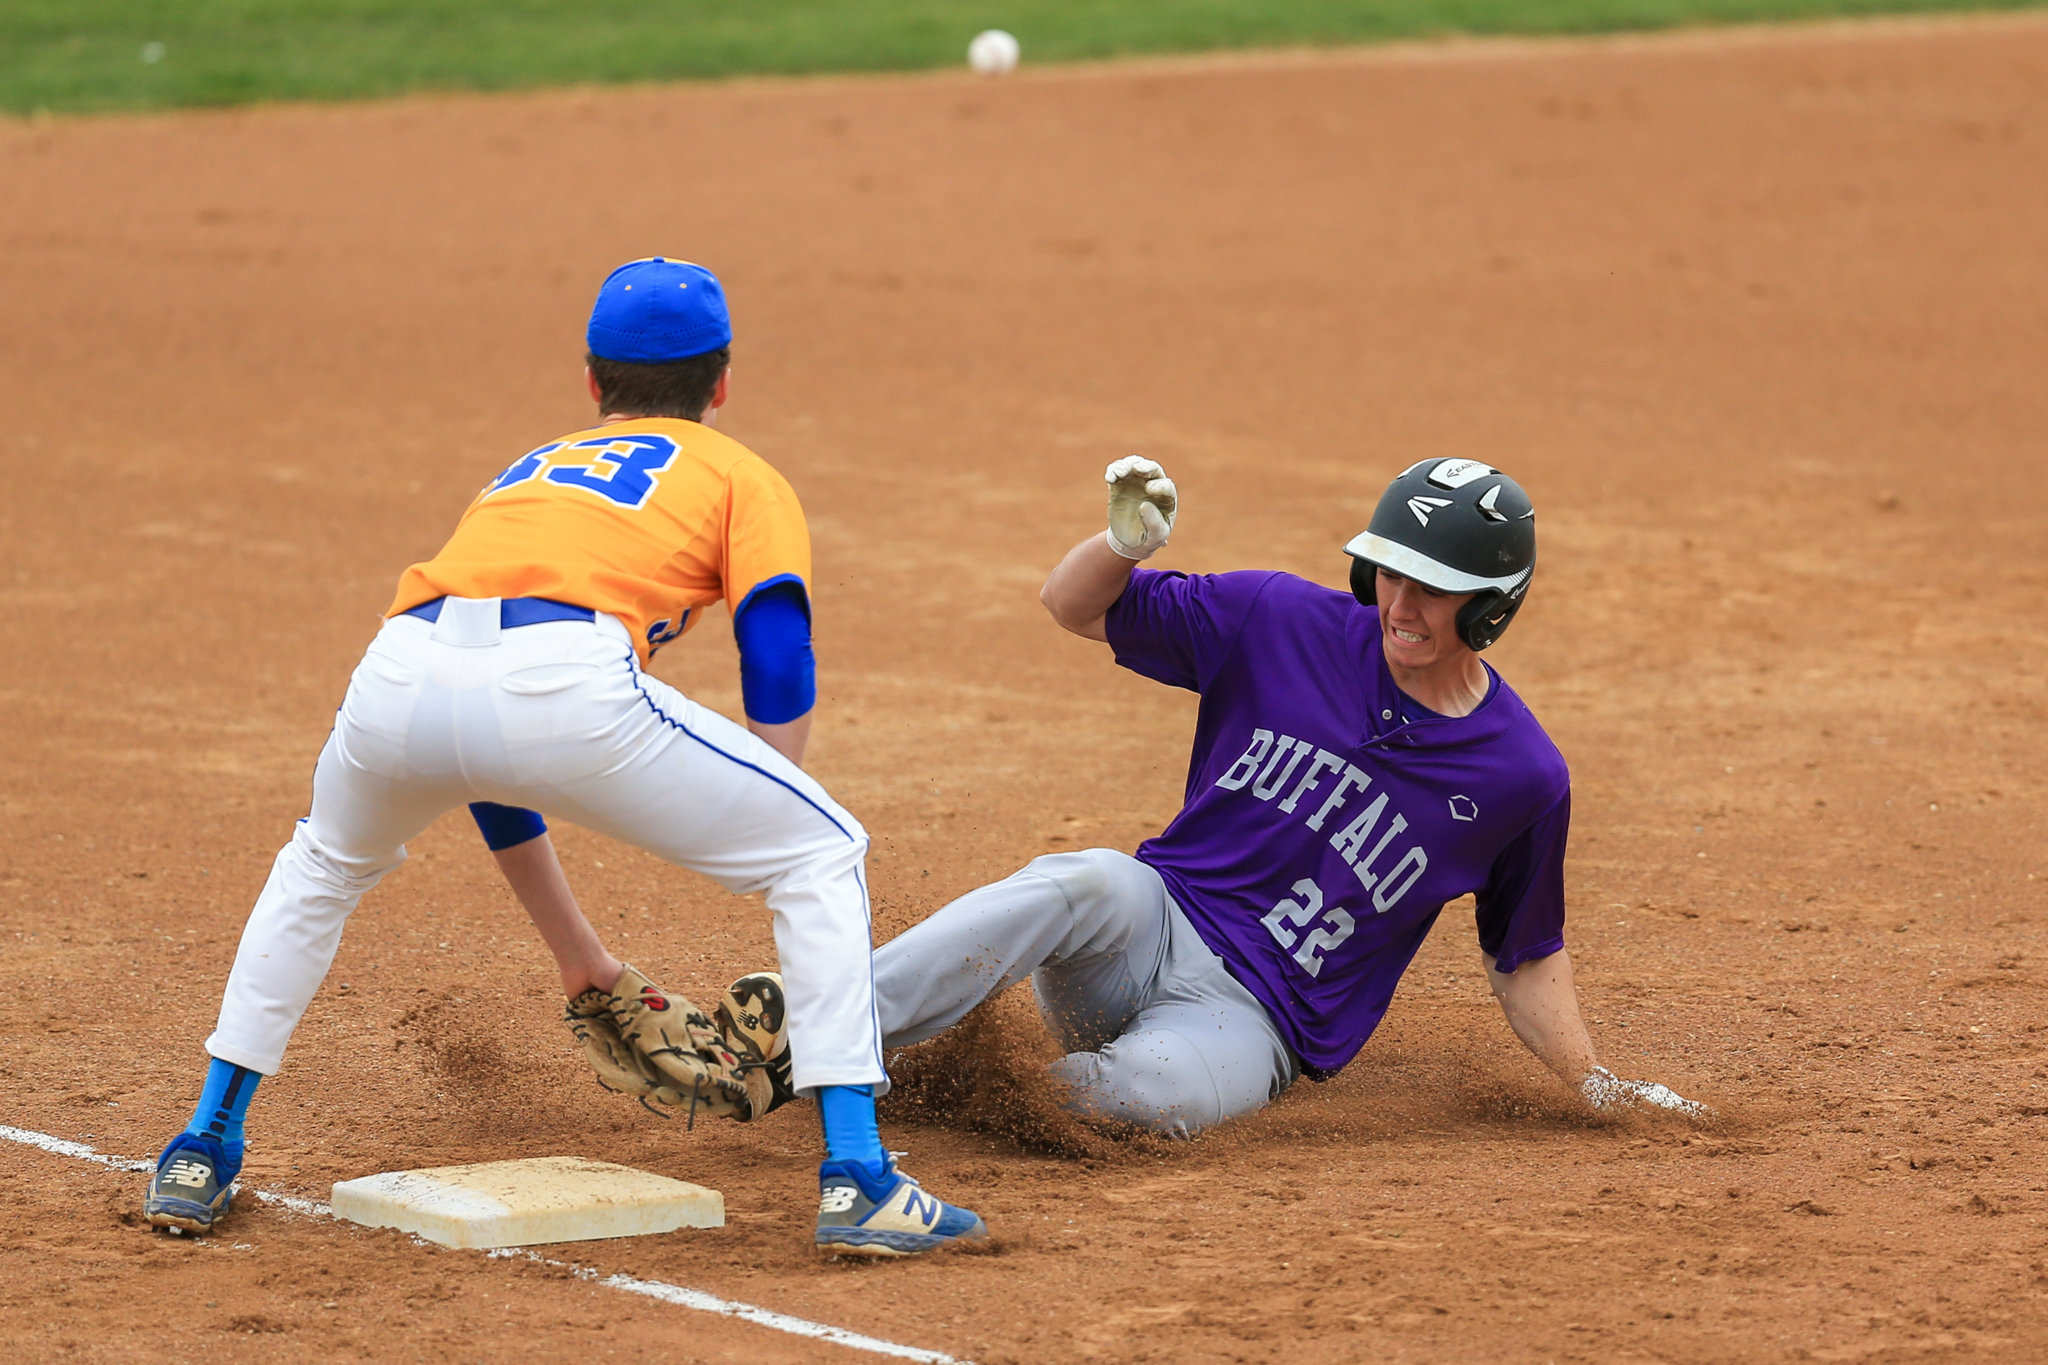 Buffalo's Cole LaPlante (22) slides safely into third base on a first-inning triple against St. Michael-Albertville Friday evening. LaPlante went 3-for-4 with two home runs in the Bison's 10-5 loss in St. Michael. Photo by Jeff Lawler, SportsEngine